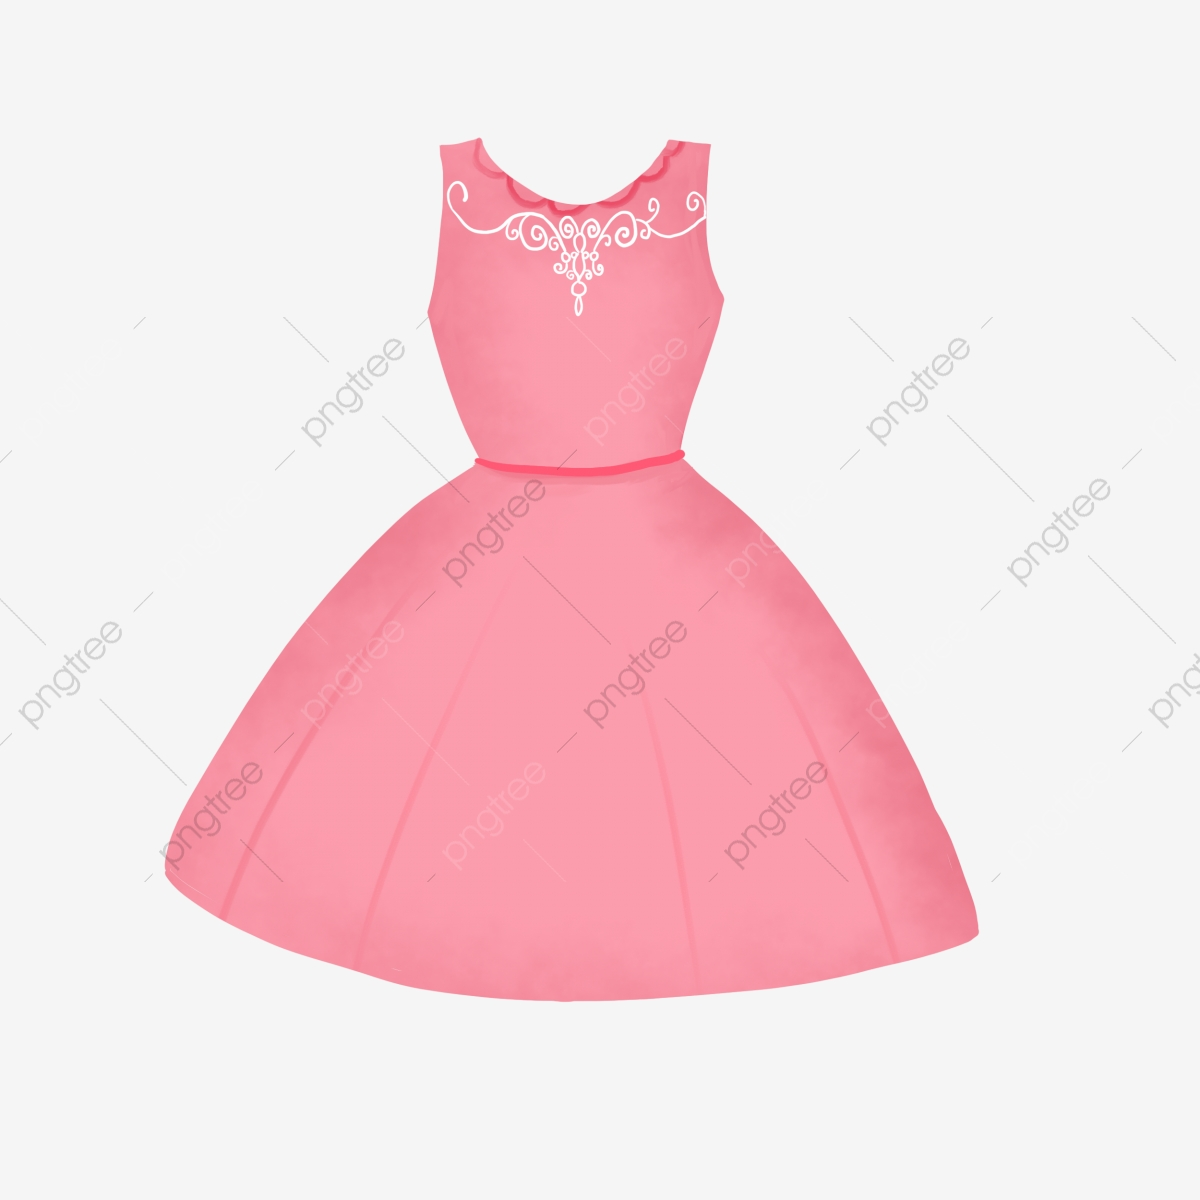 Pink Princess Dress Hand Painted Princess Dress Cartoon